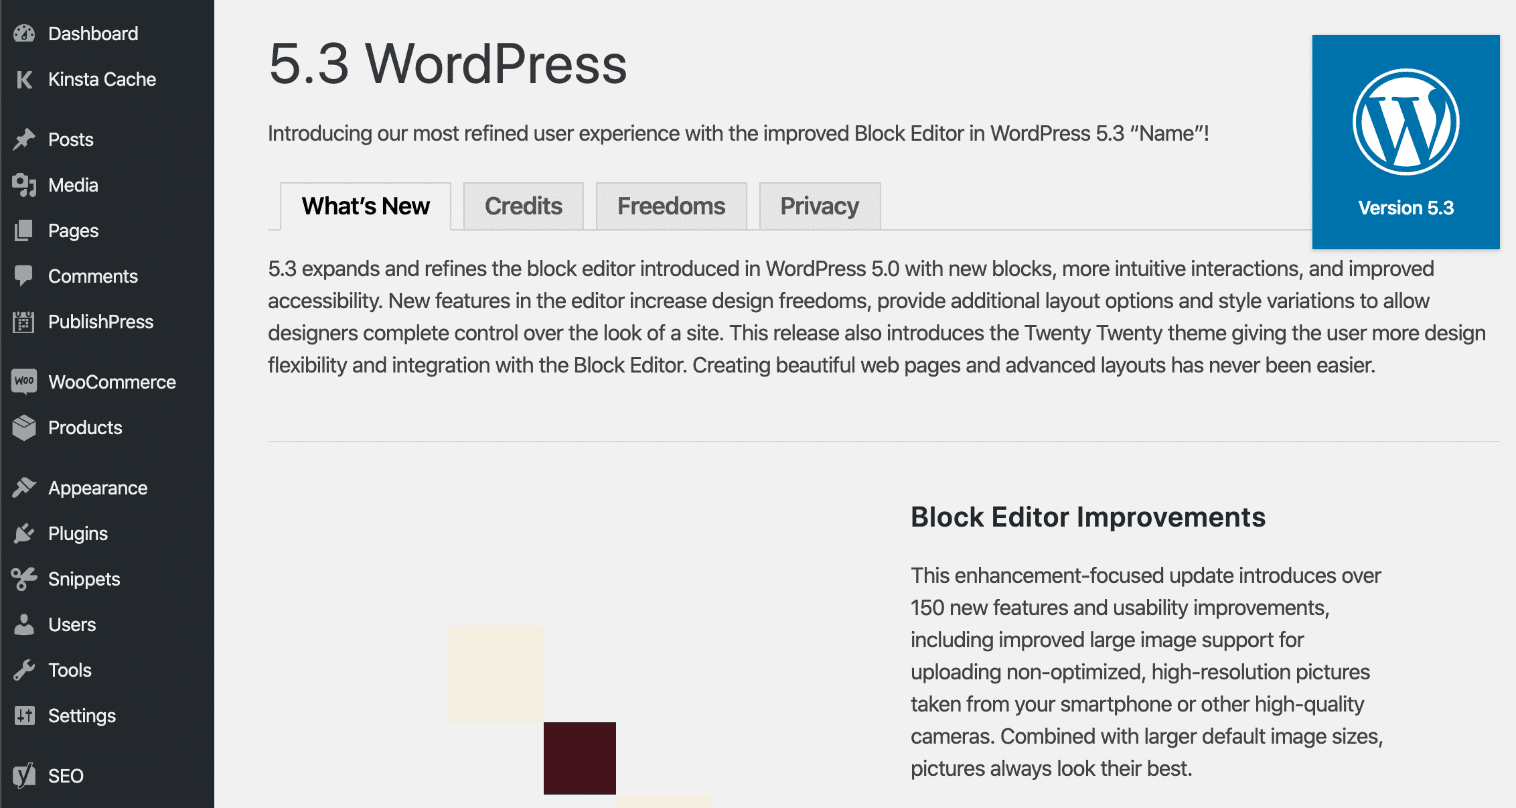 WordPress 5.3 welcome screen